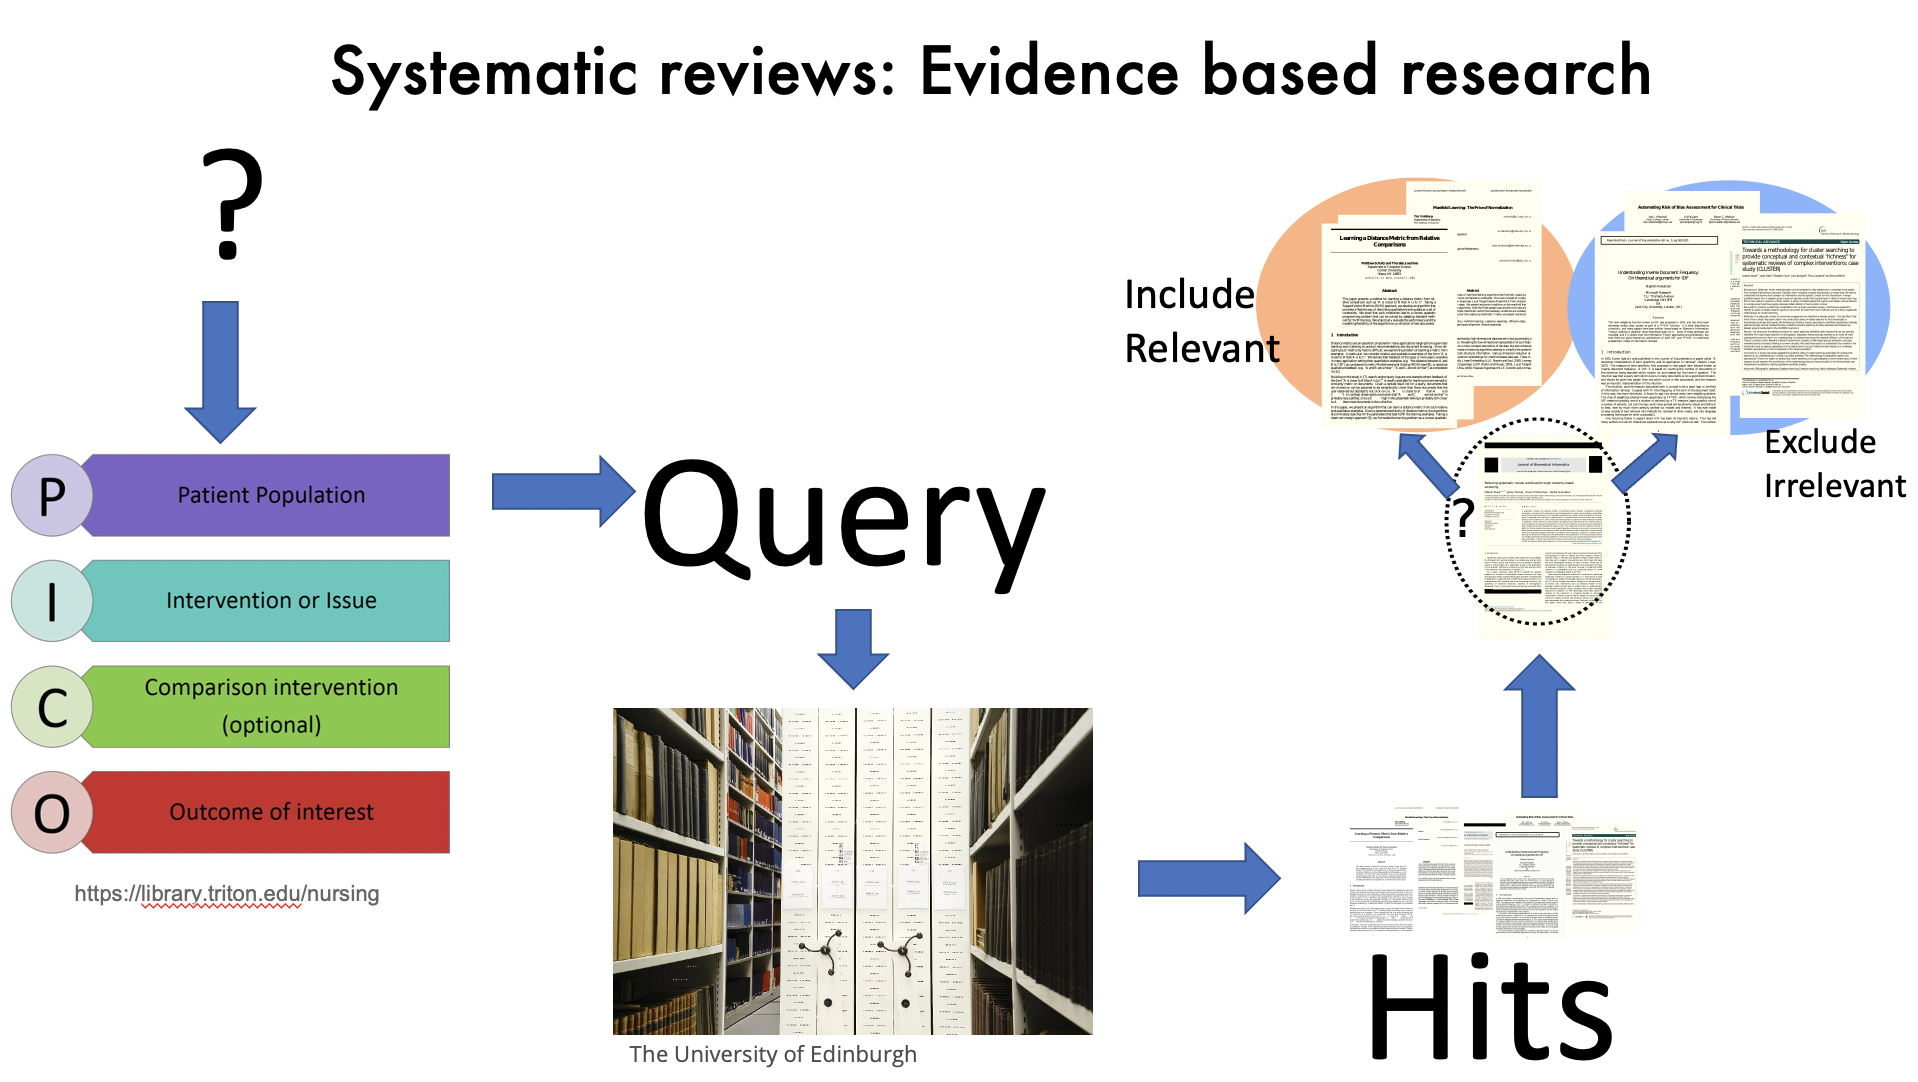 Systematic reviews of biomedical research focus on specific questions framed in terms of the patient population, intervention, control, and outcomes measured (PICO). These terms are used to query literature databases. The resulting hits (which could be hundreds or thousands of articles) need to be sorted into relevant and irrelevant groups.